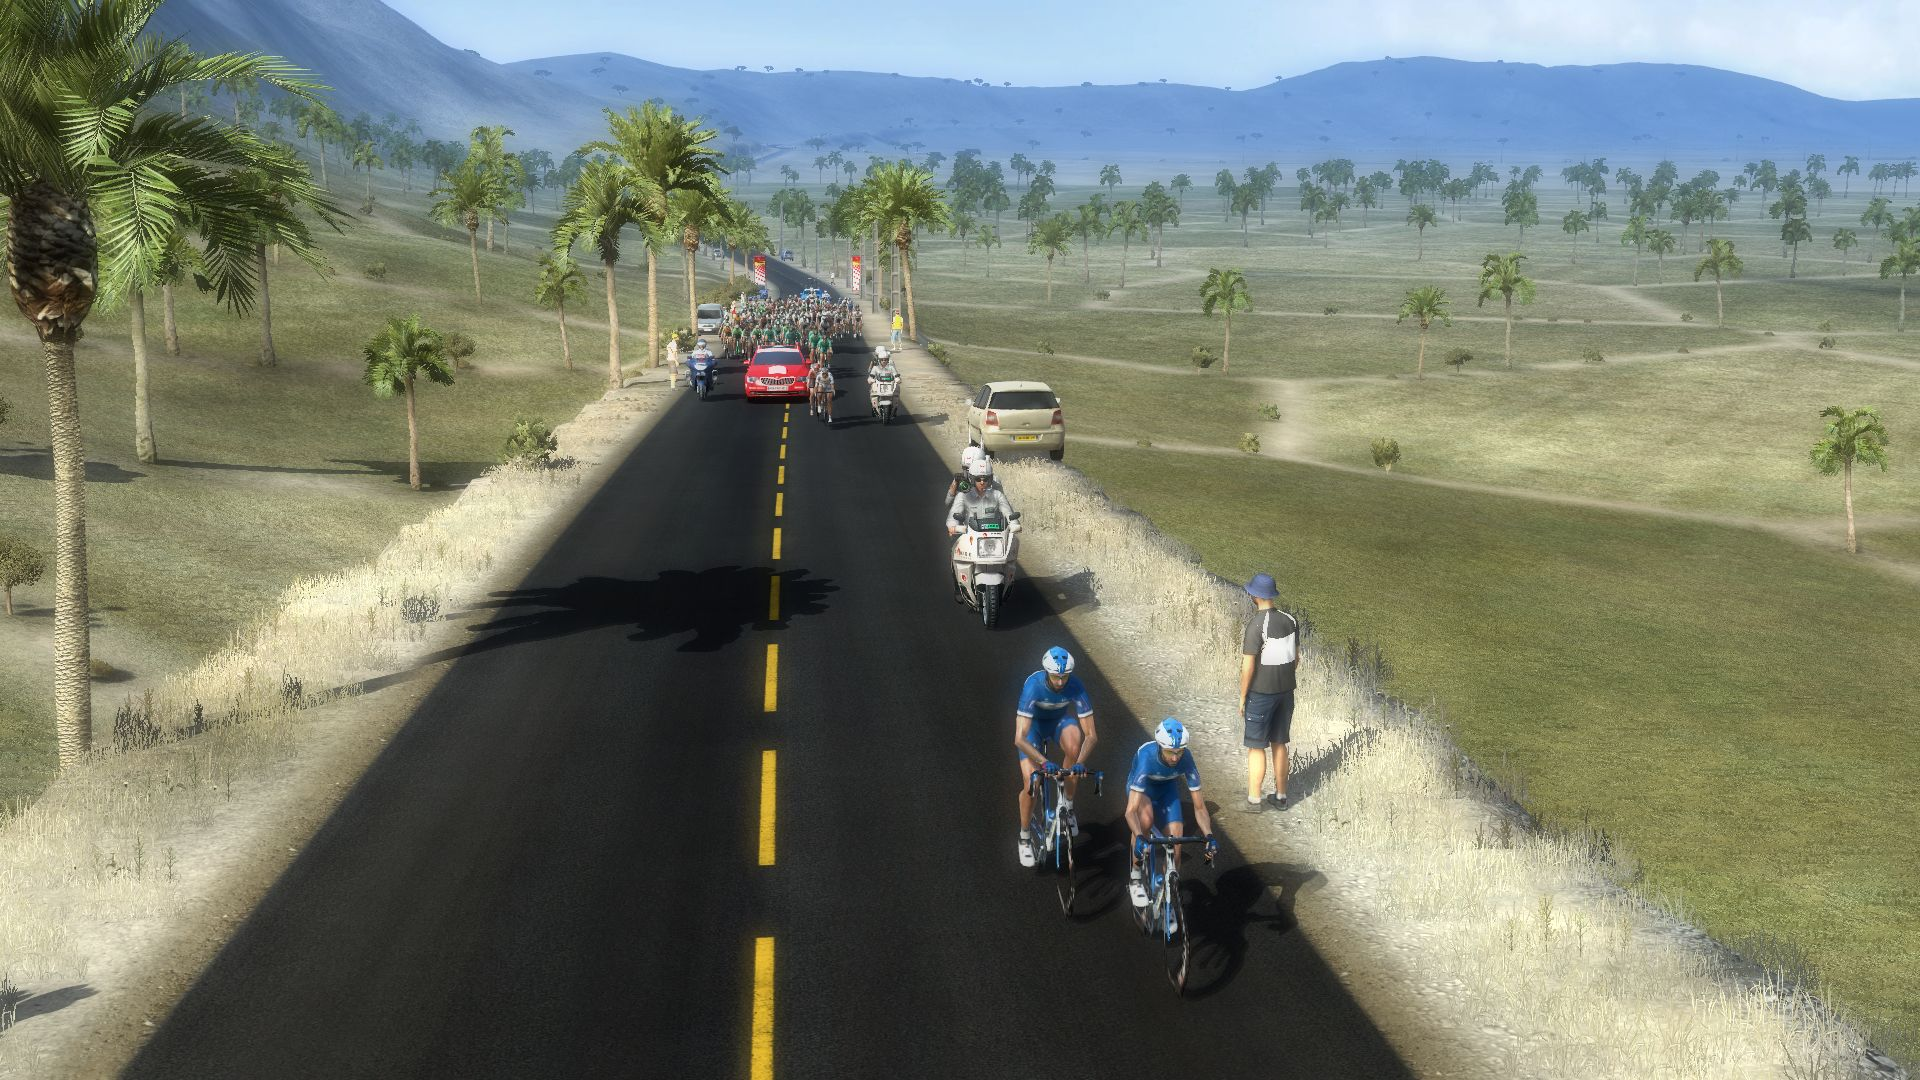 pcmdaily.com/images/mg/2019/Races/C2HC/Eritrea/TOES1%203.jpg